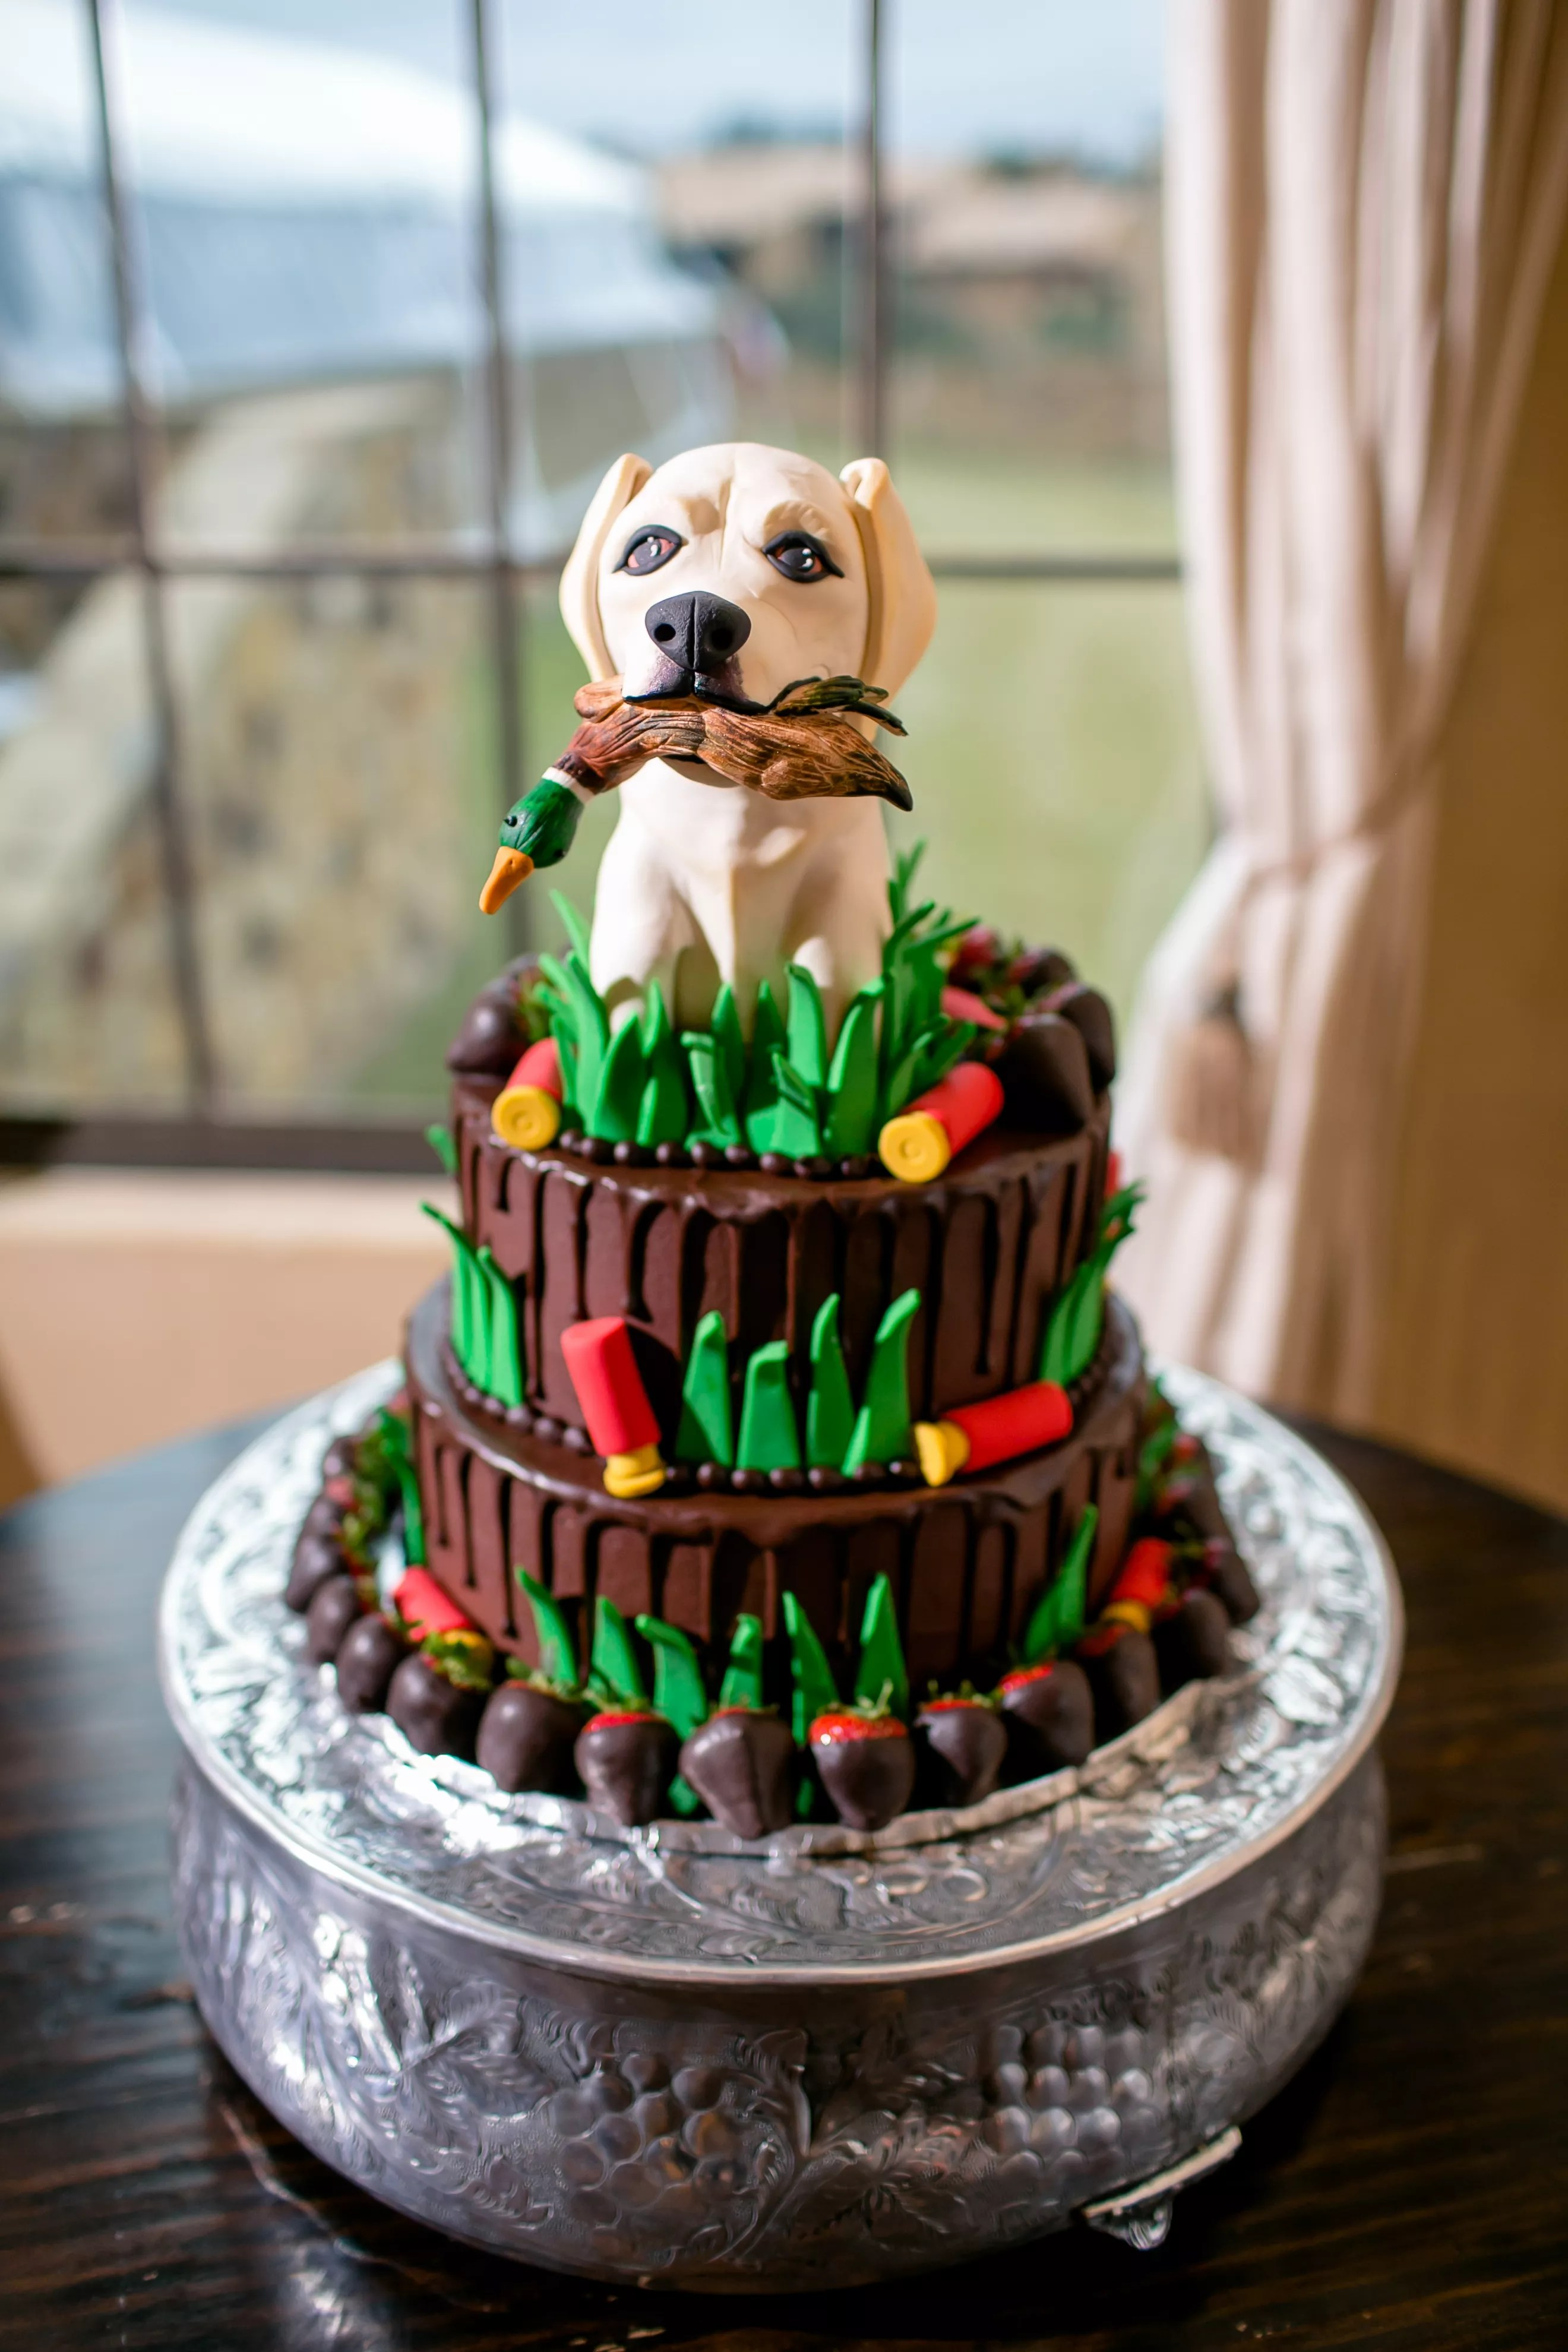 Whimsical Grooms Cake with Hunting Dog Topper